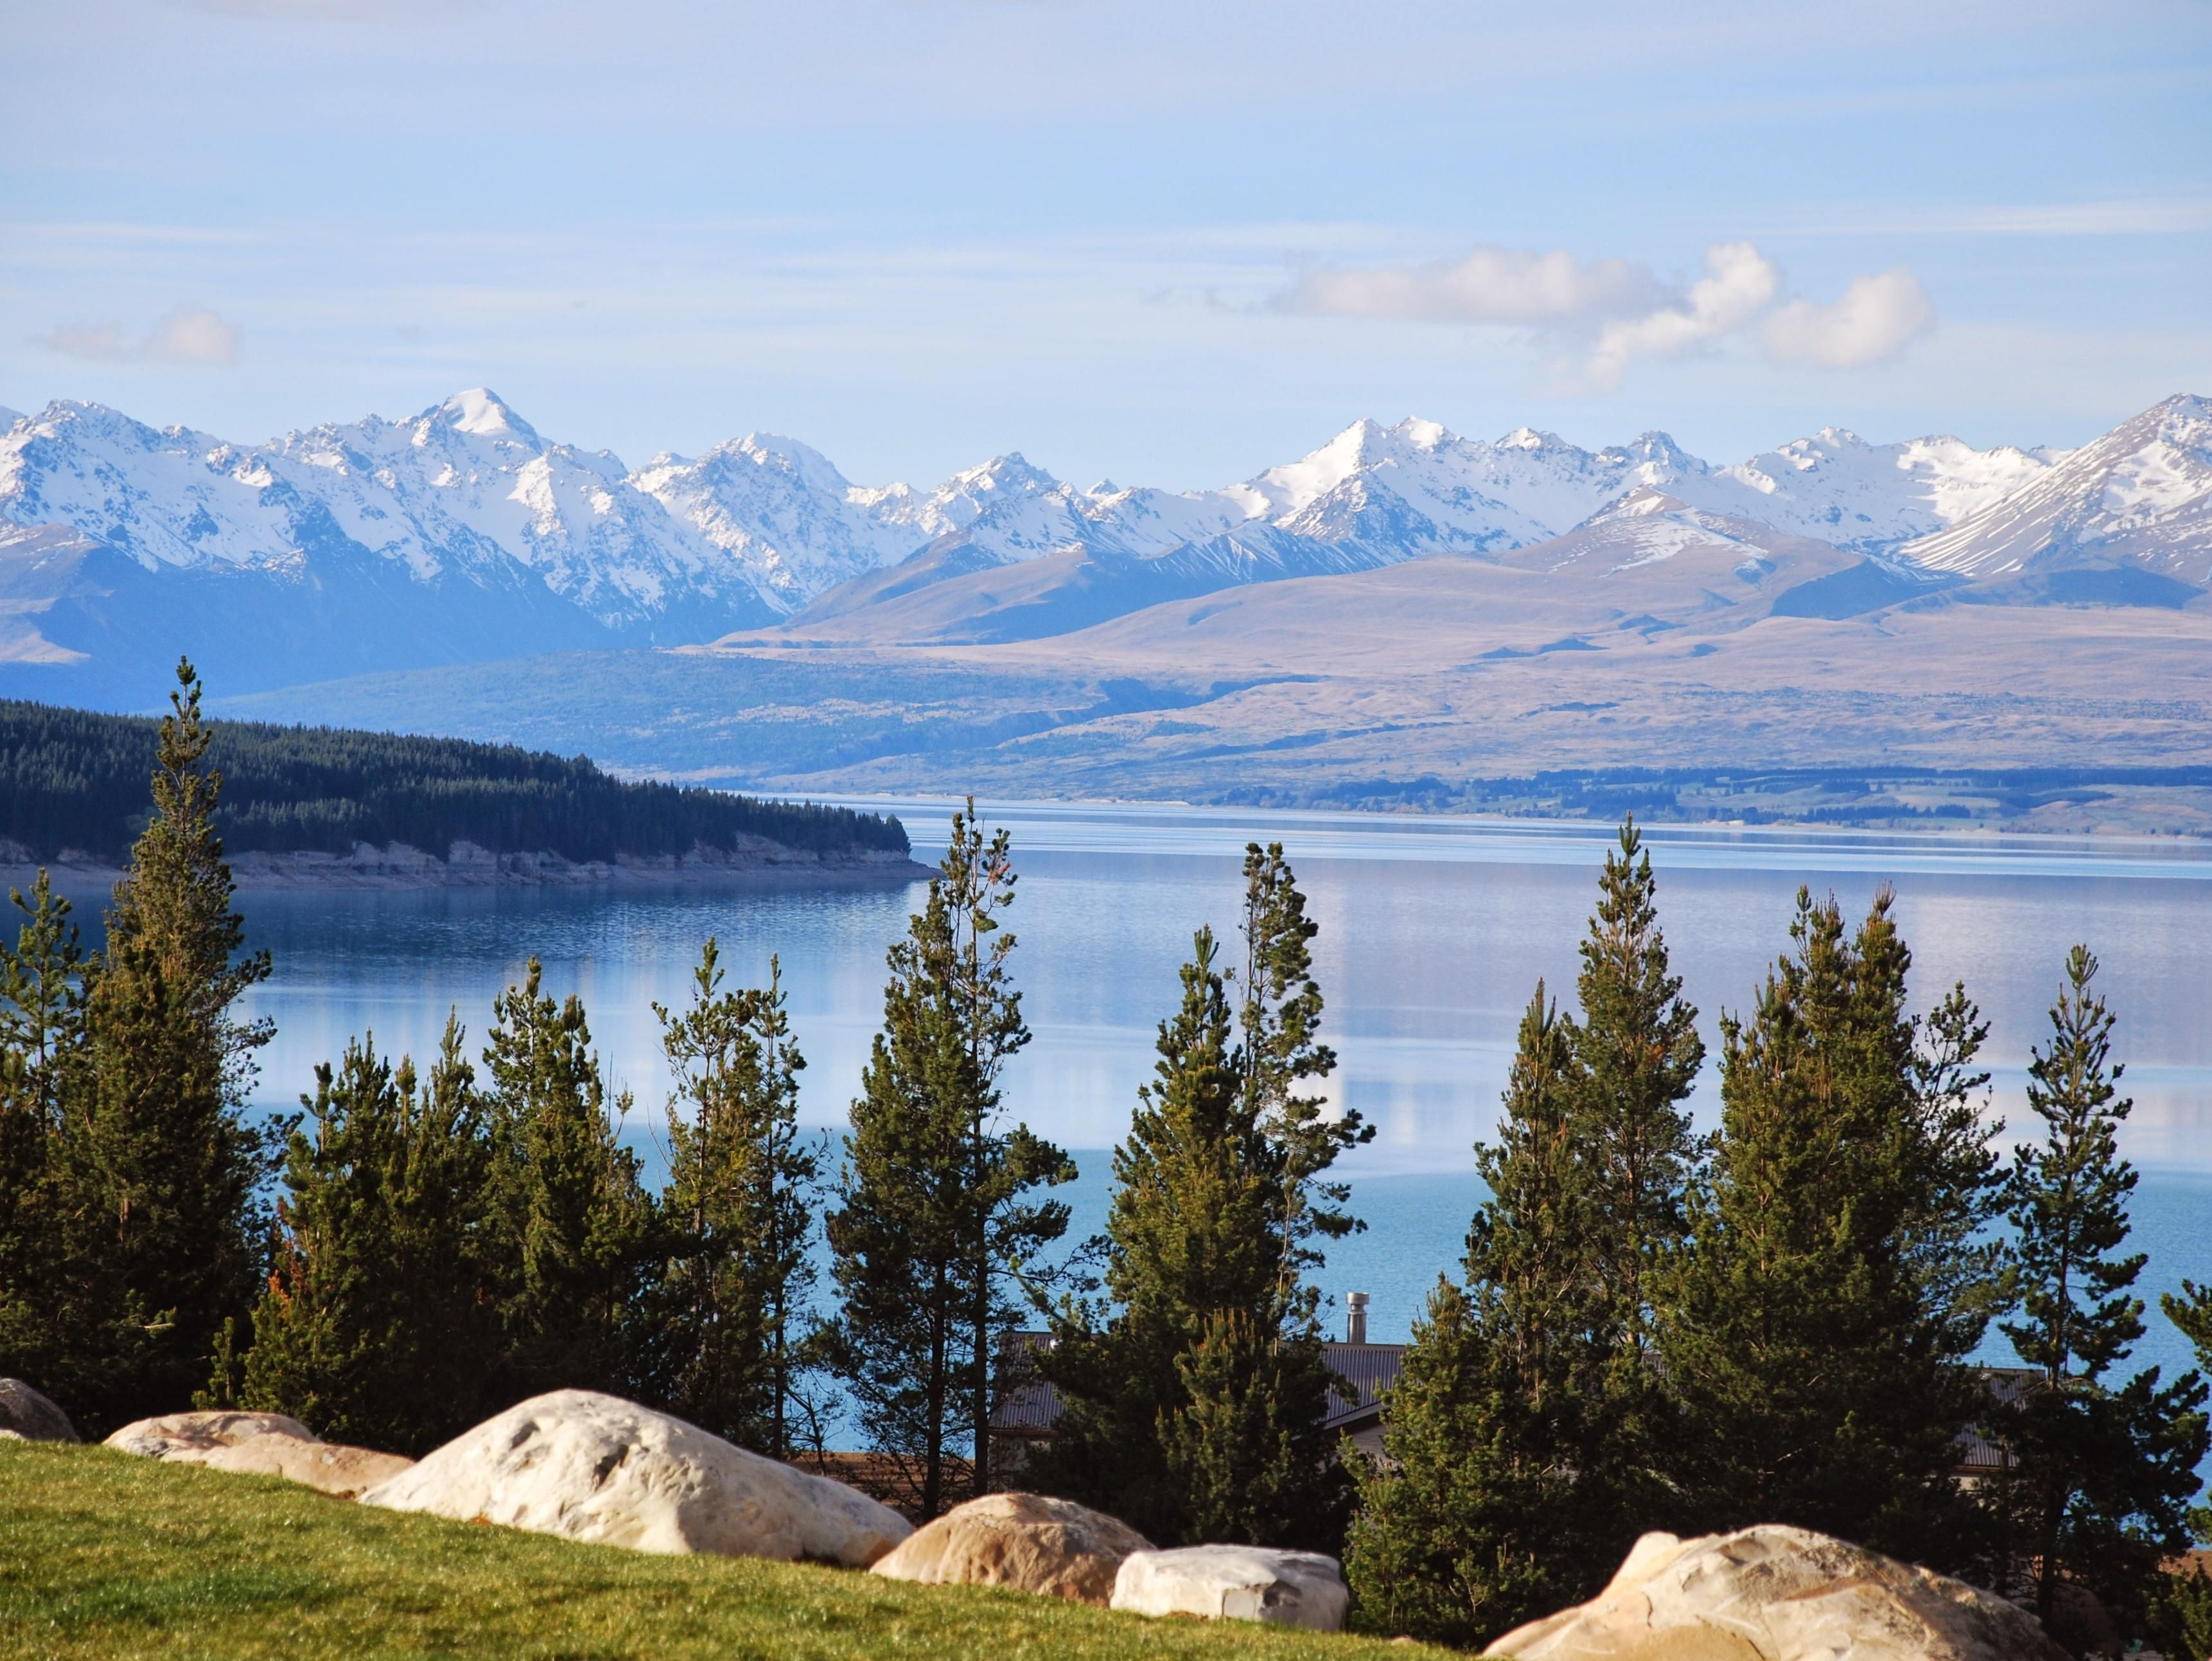 Twizel Mt Cook Lakeside Retreat New Zealand Pacific Ocean And Australia Mt Cook Lakeside Retreat Is Perfectly Located For Both Bu Pacific Ocean Ocean Lakeside